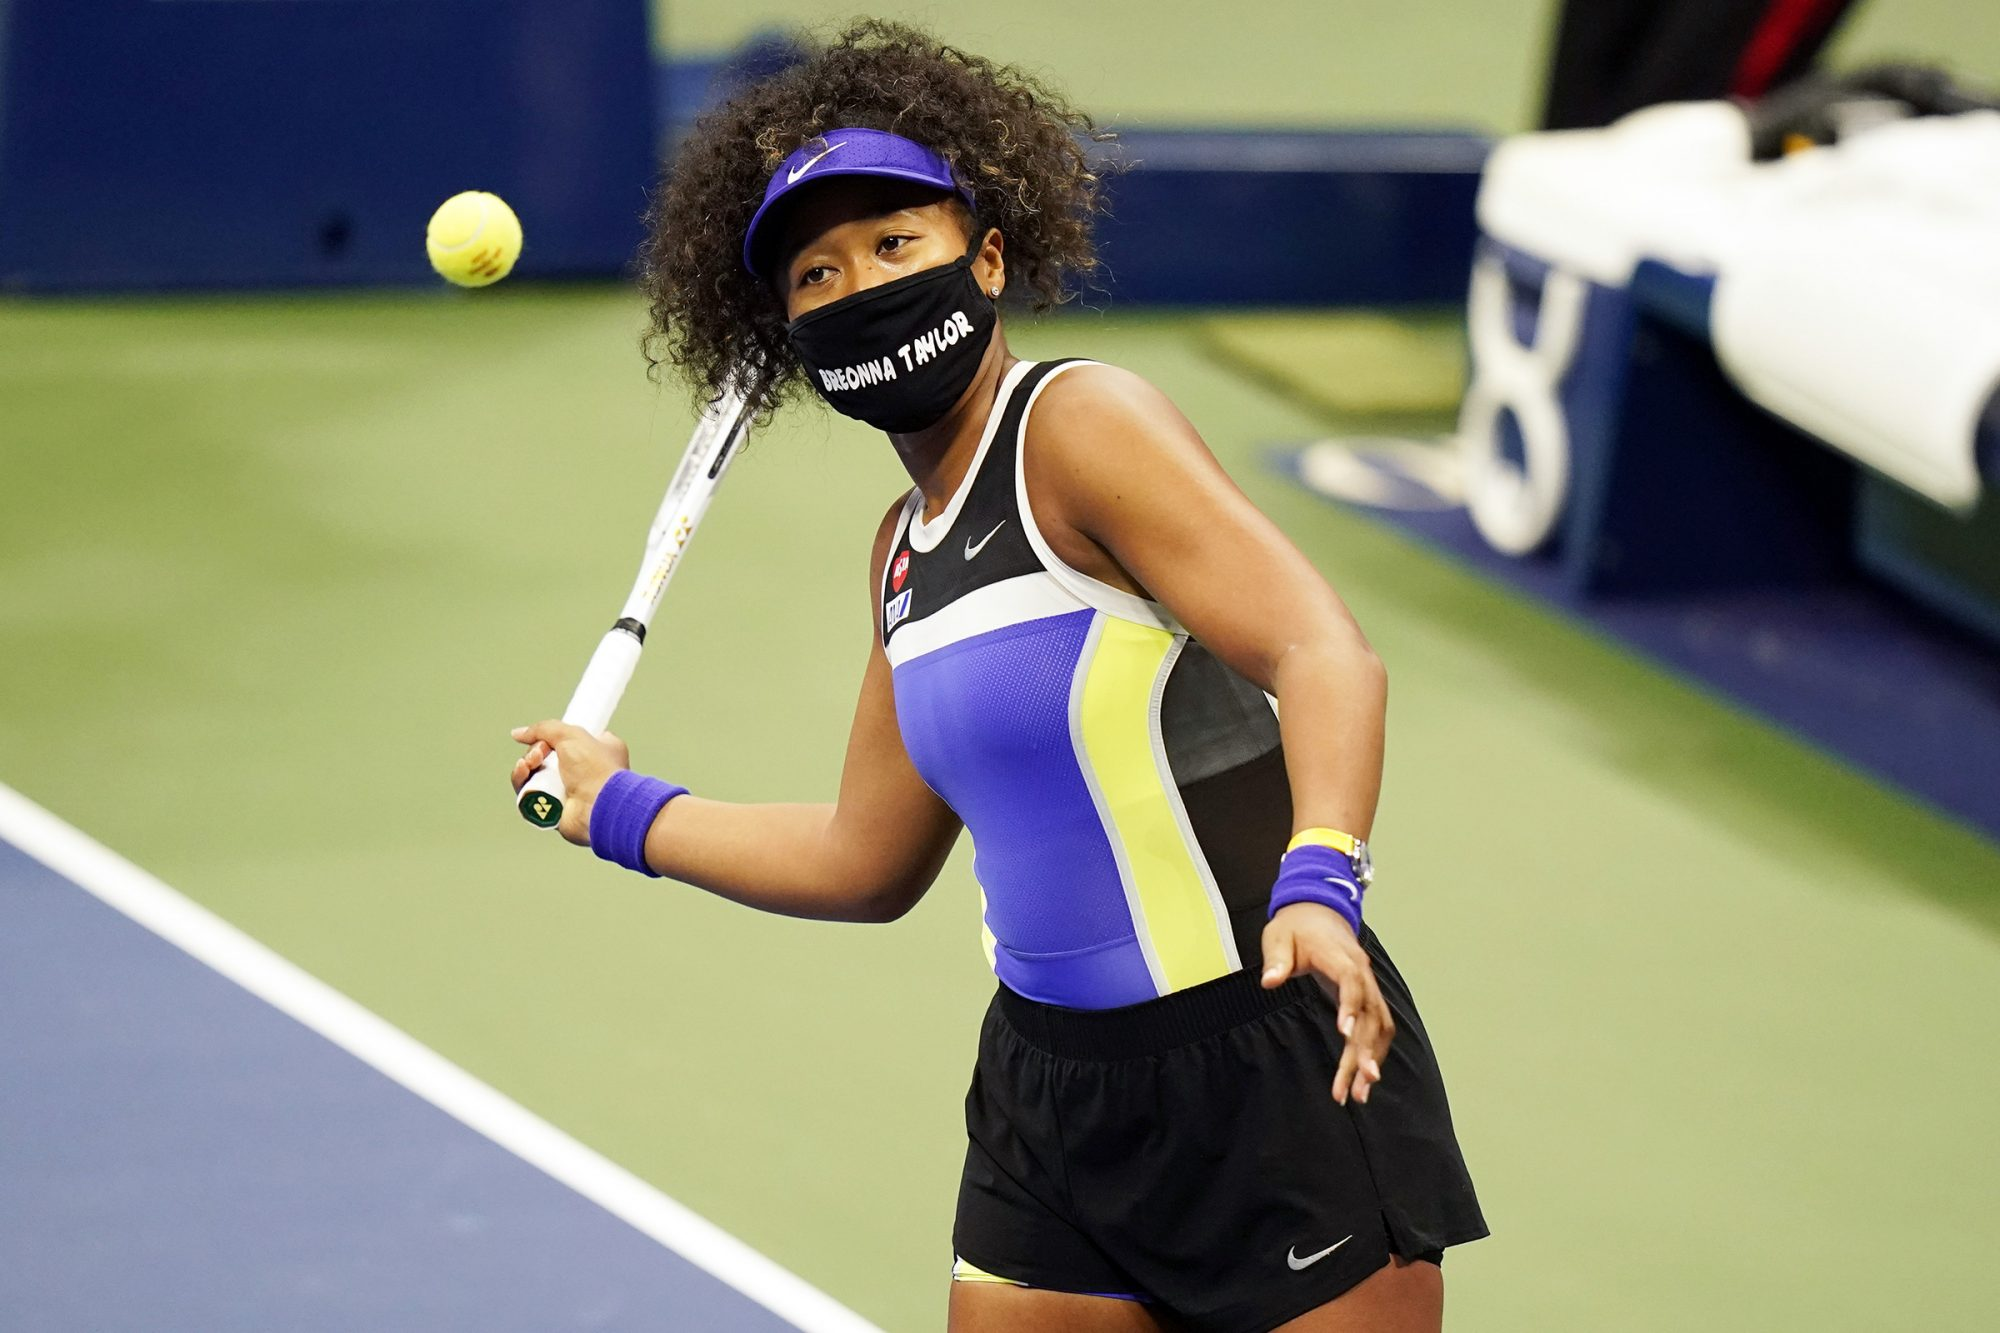 Naomi Osaka, of Japan, wears a mask in honor of Breonna Taylor as she celebrates after defeating Misaki Doi